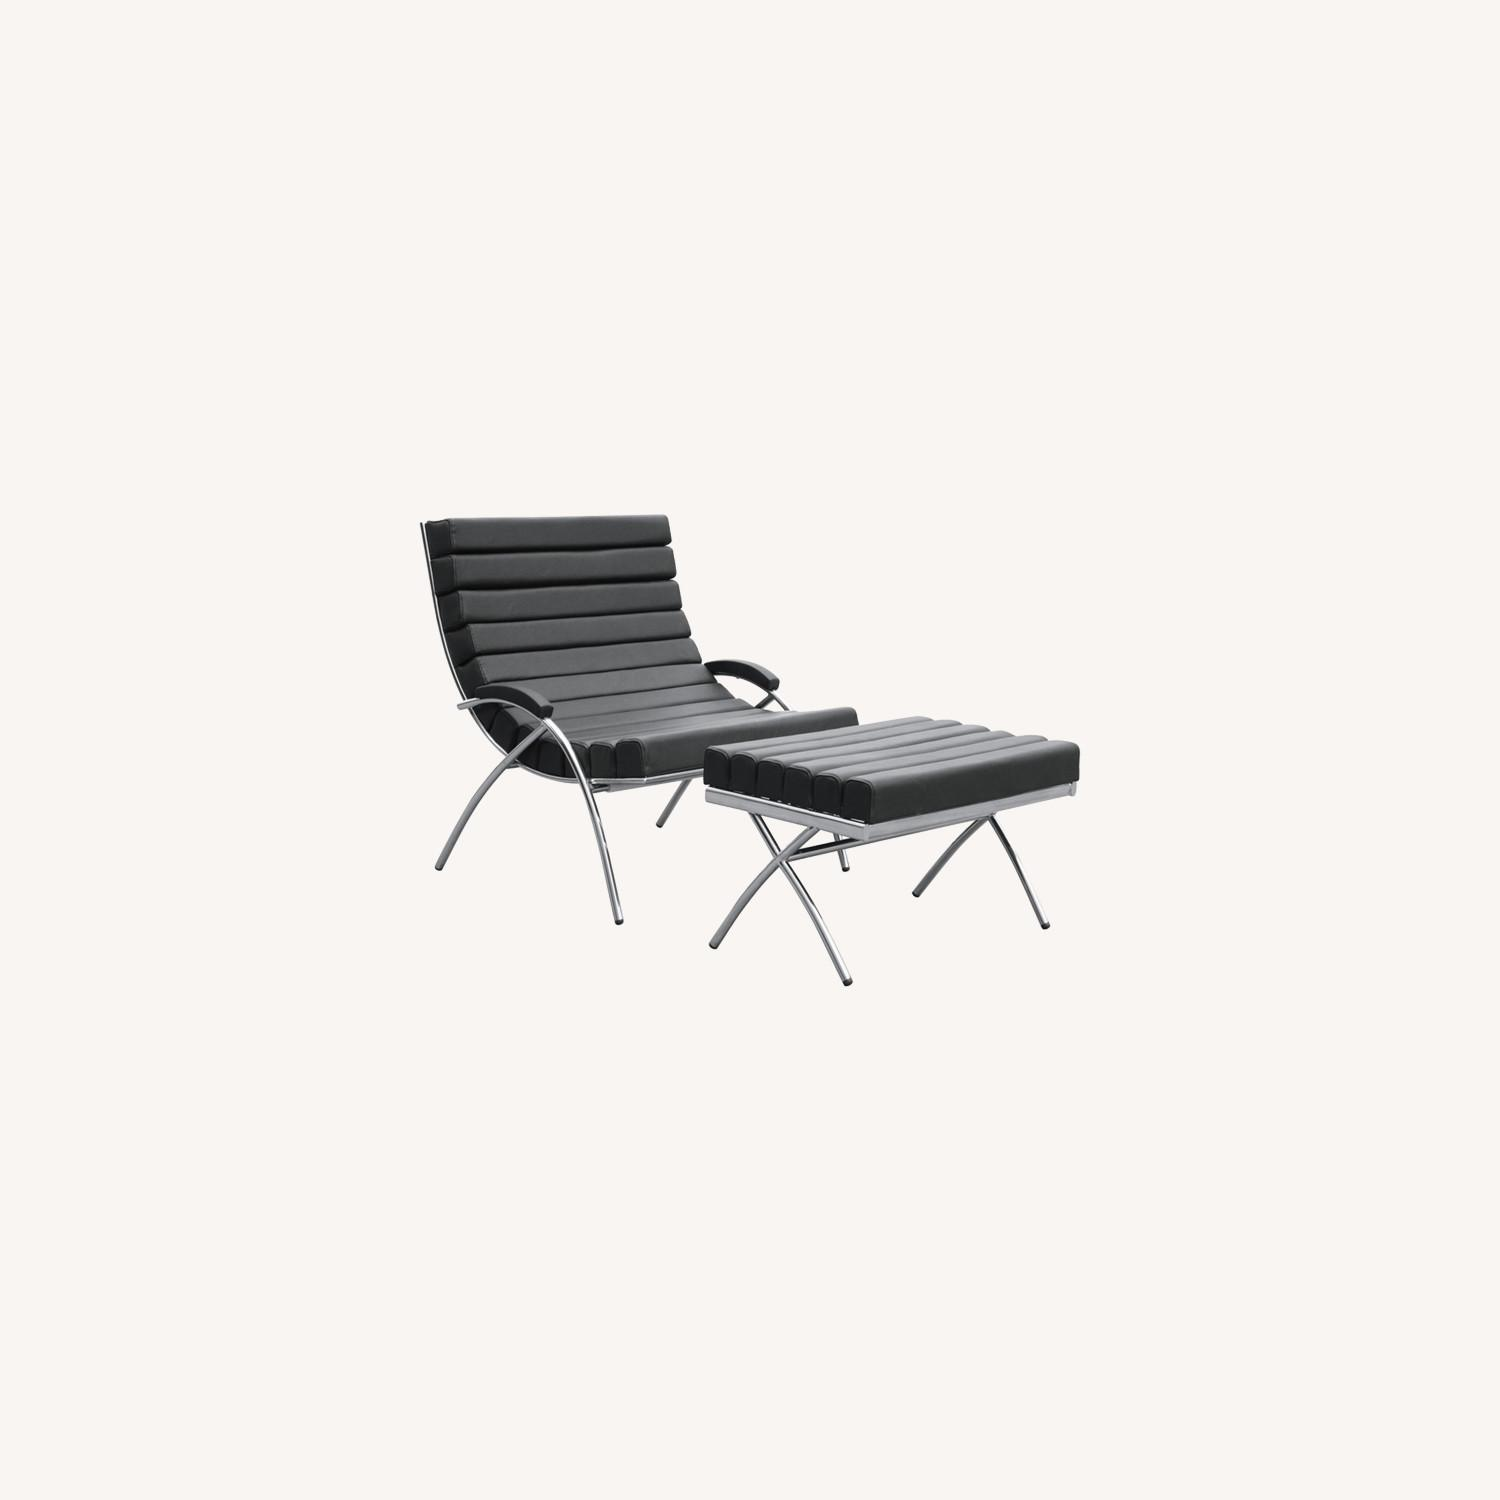 Chair & Ottoman In Black Leather & Stainless Steel - image-7